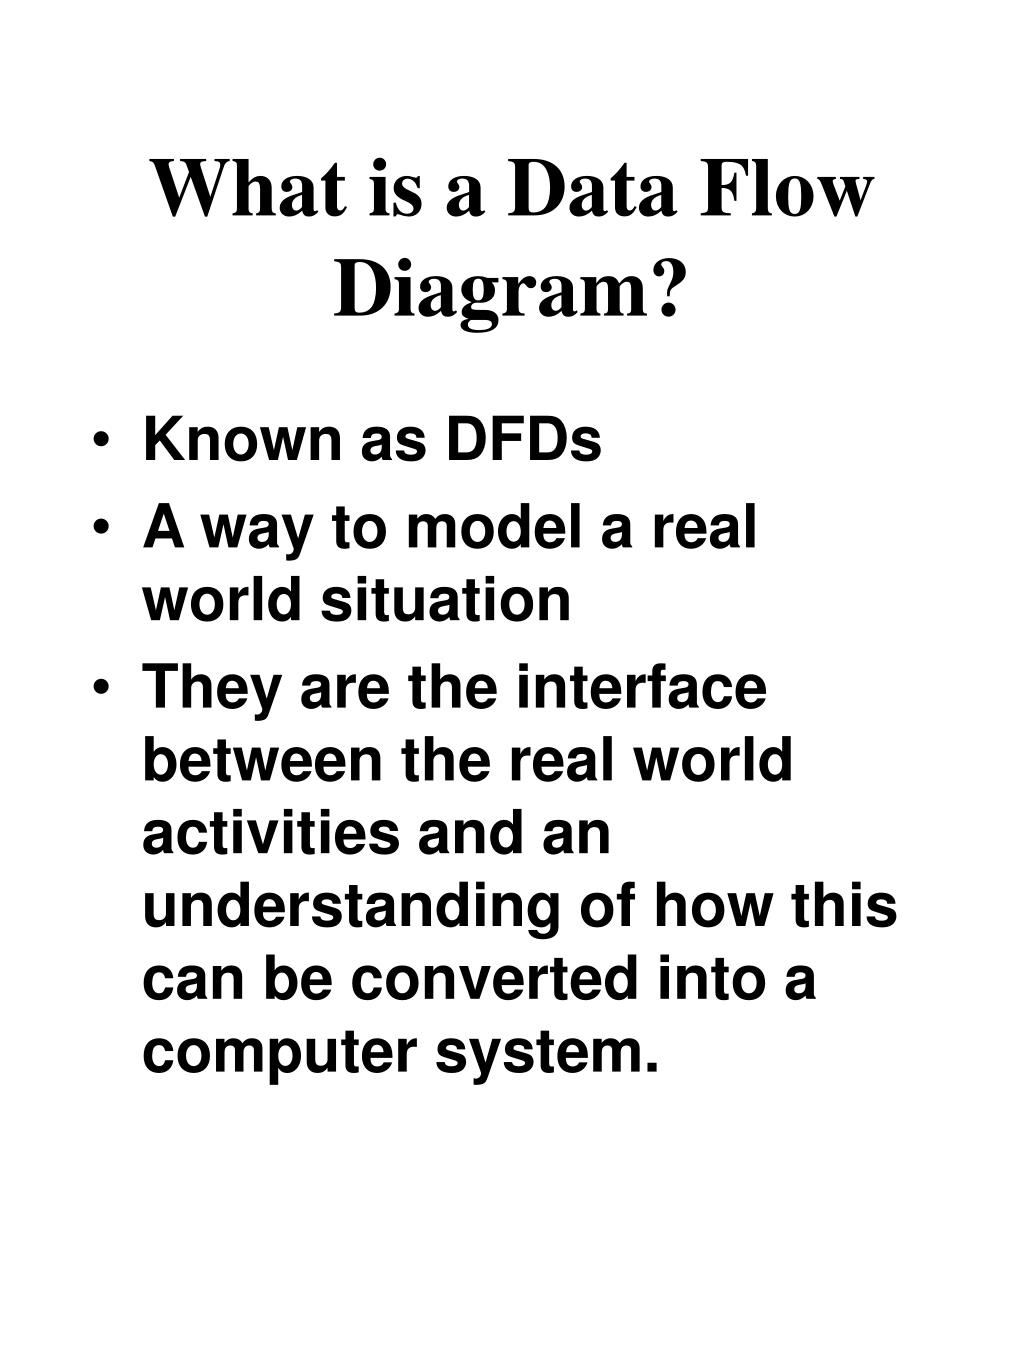 What is a Data Flow Diagram?